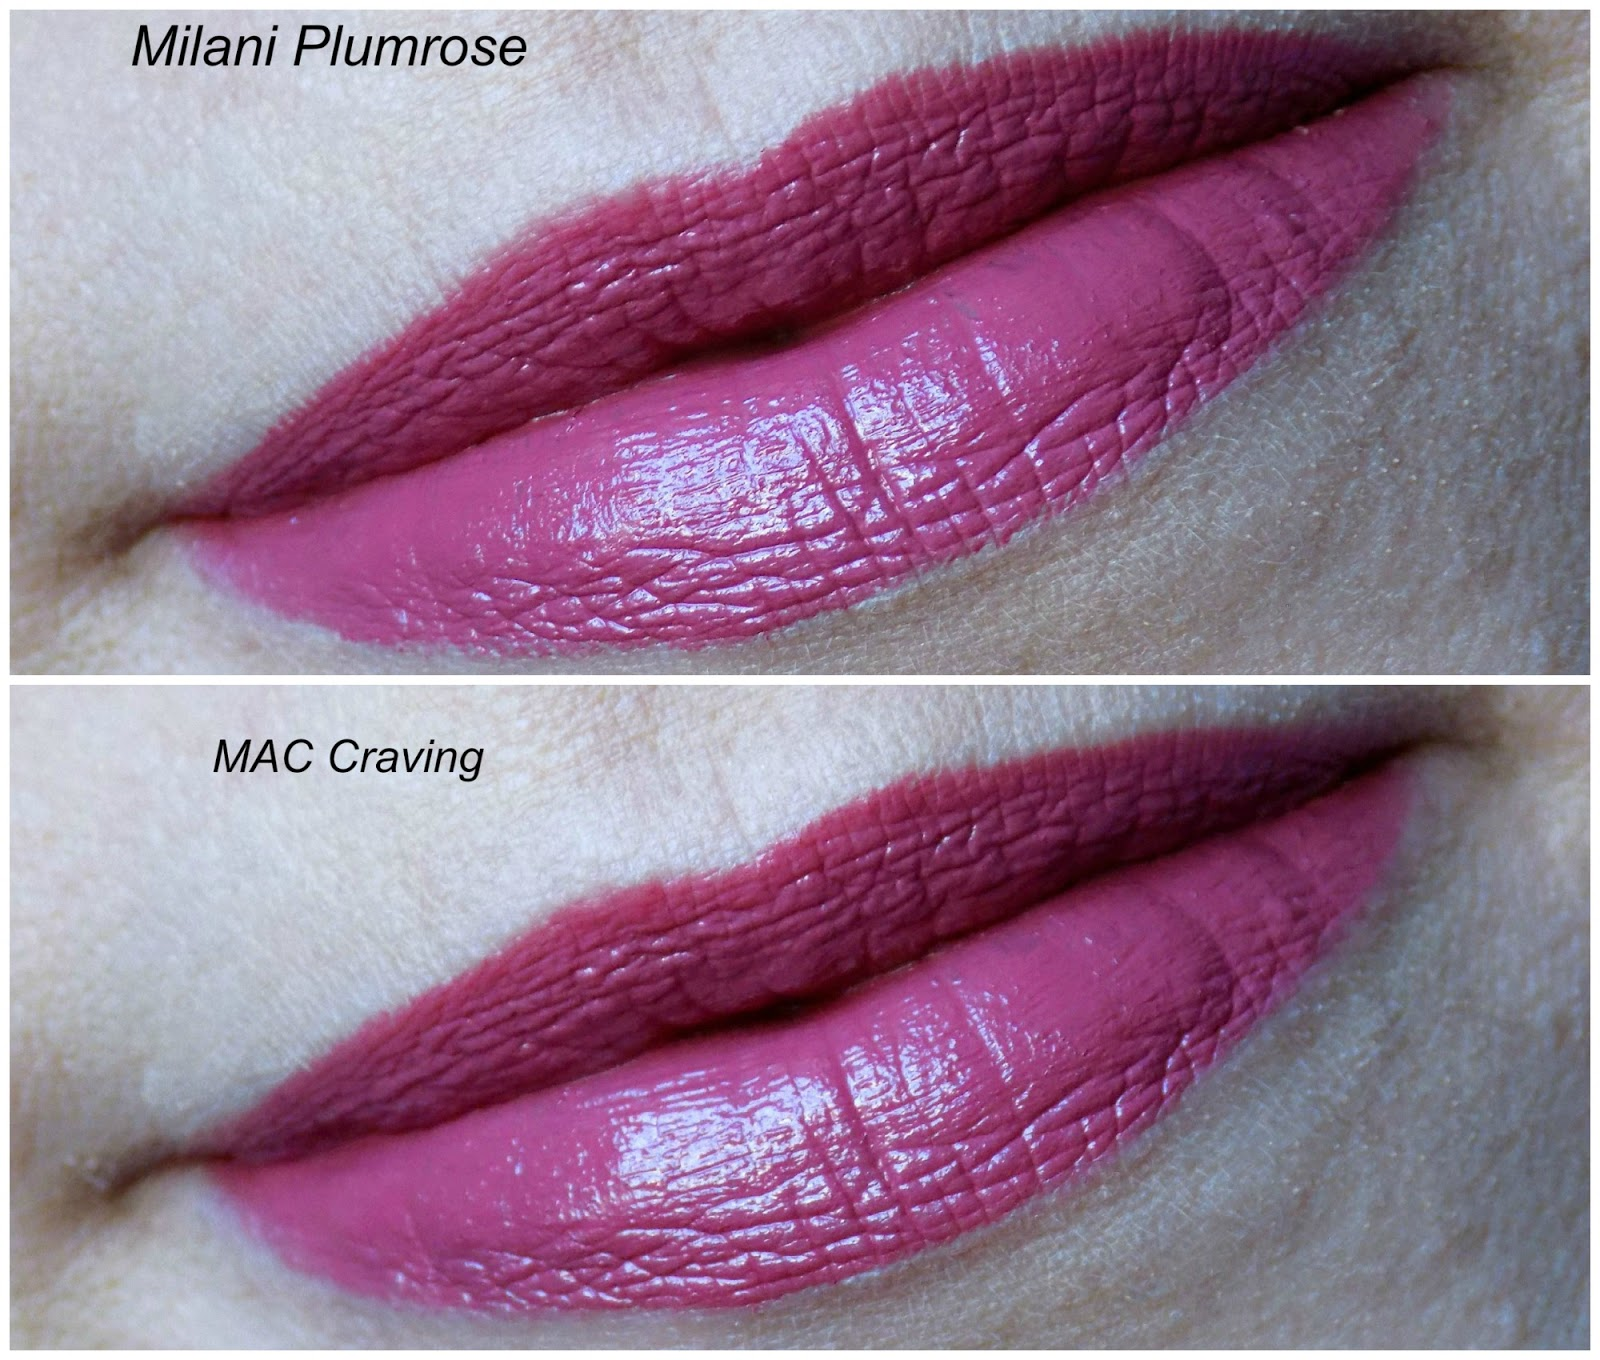 MAC Craving lipstick's dupe